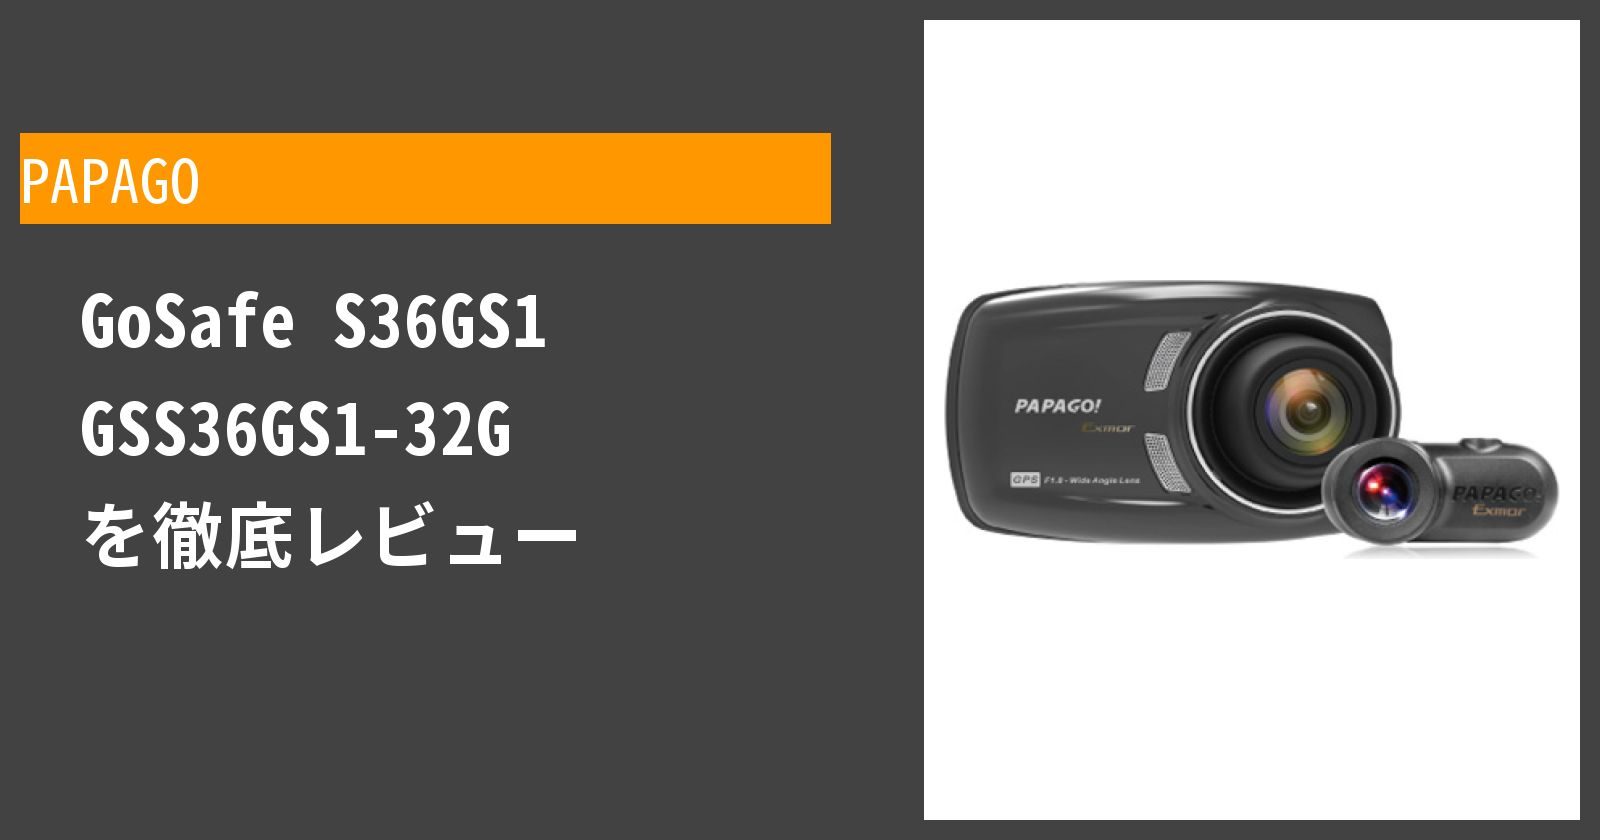 GoSafe S36GS1 GSS36GS1-32Gを徹底評価